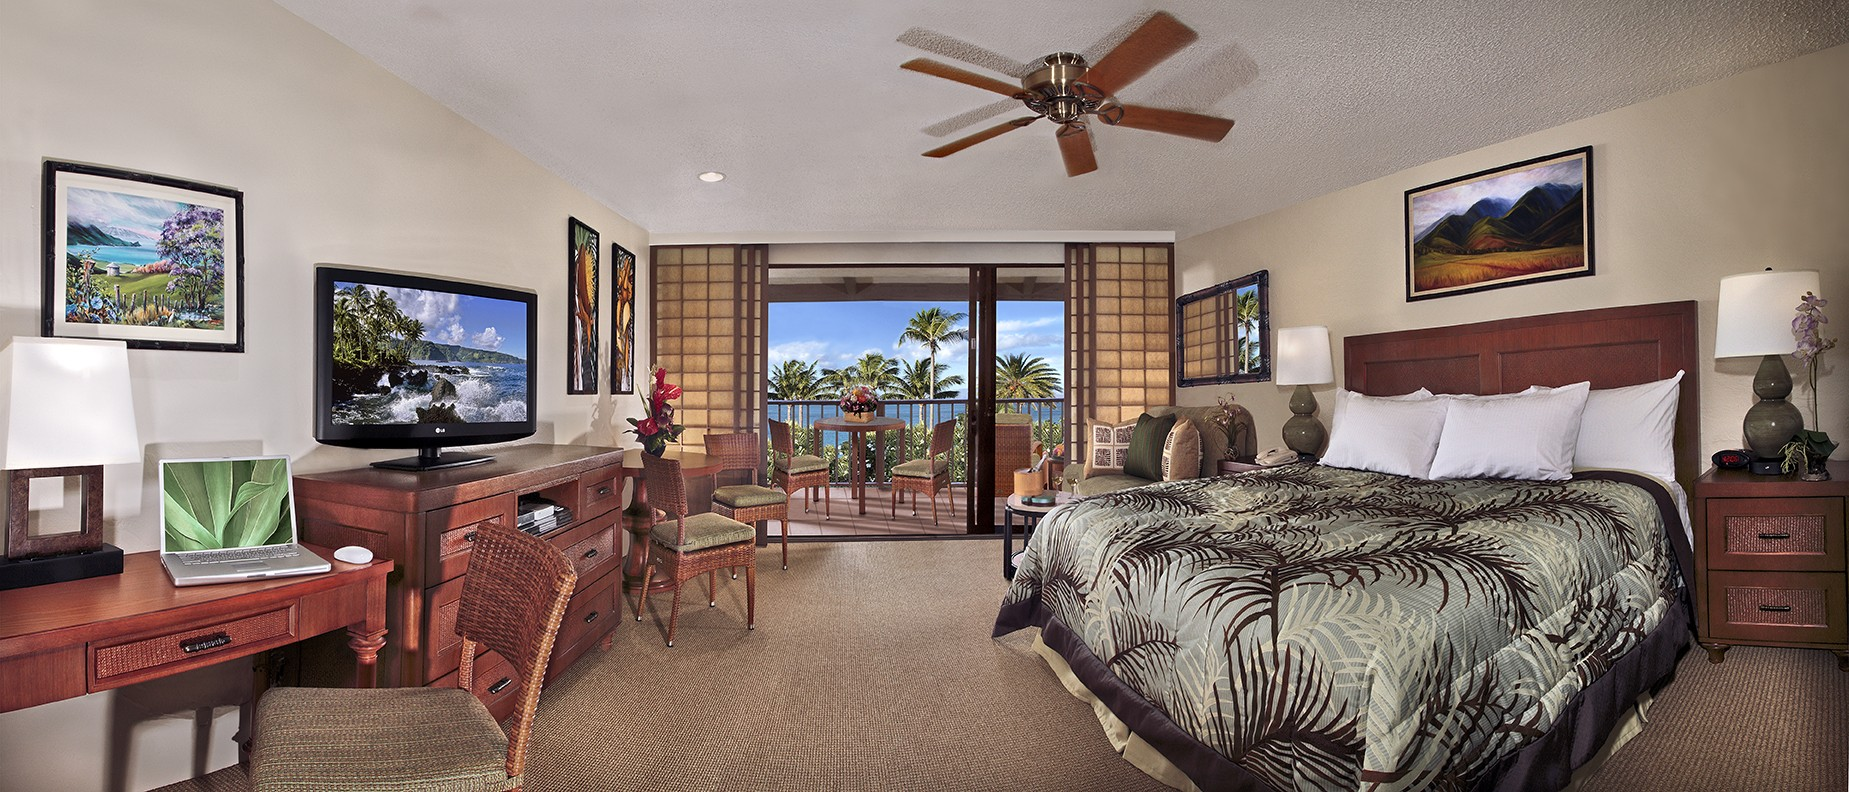 Rooms: Napili Kai Beach Resort